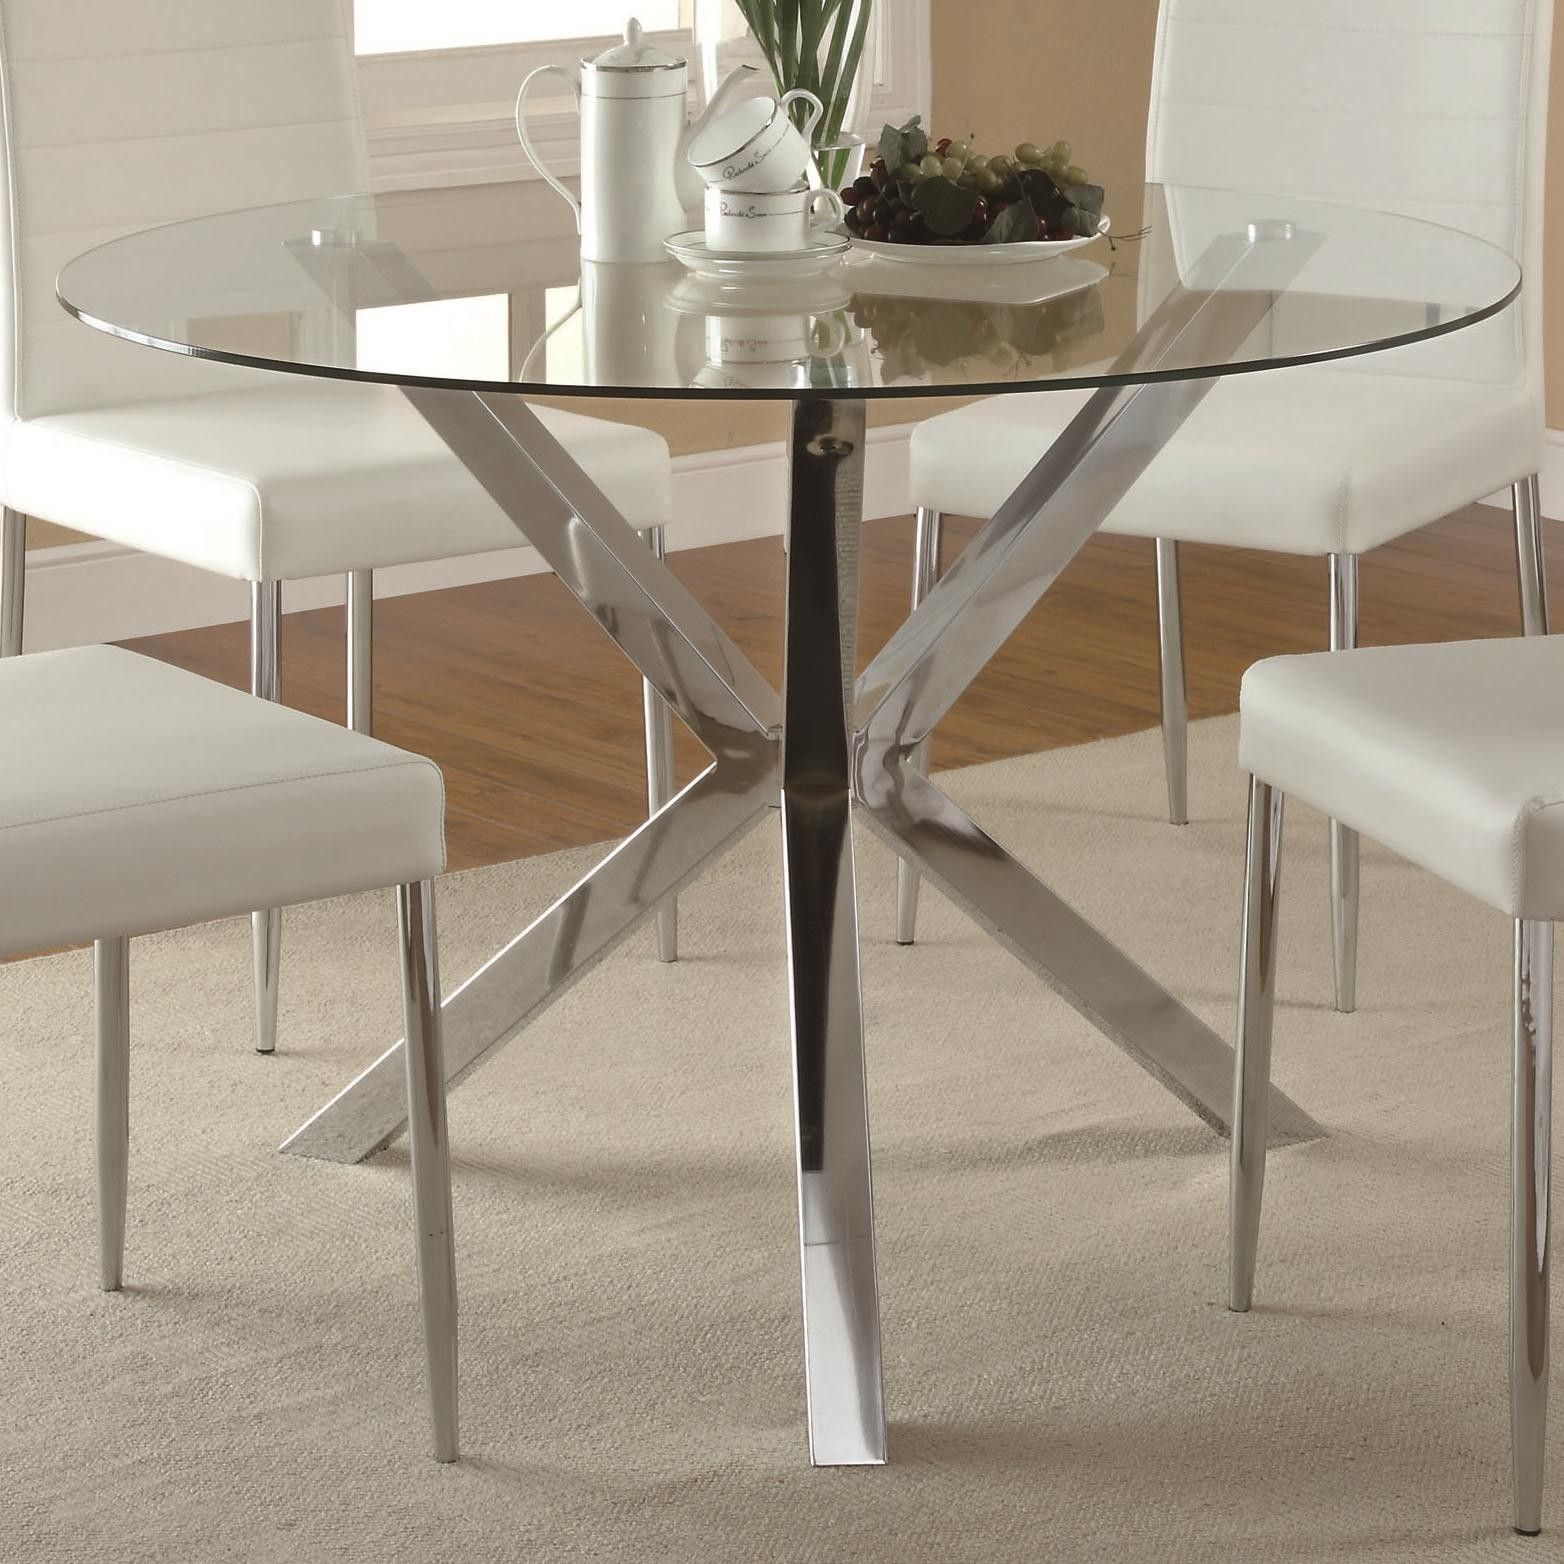 Vance Glass-Top Dining Table With Unique Chrome Base